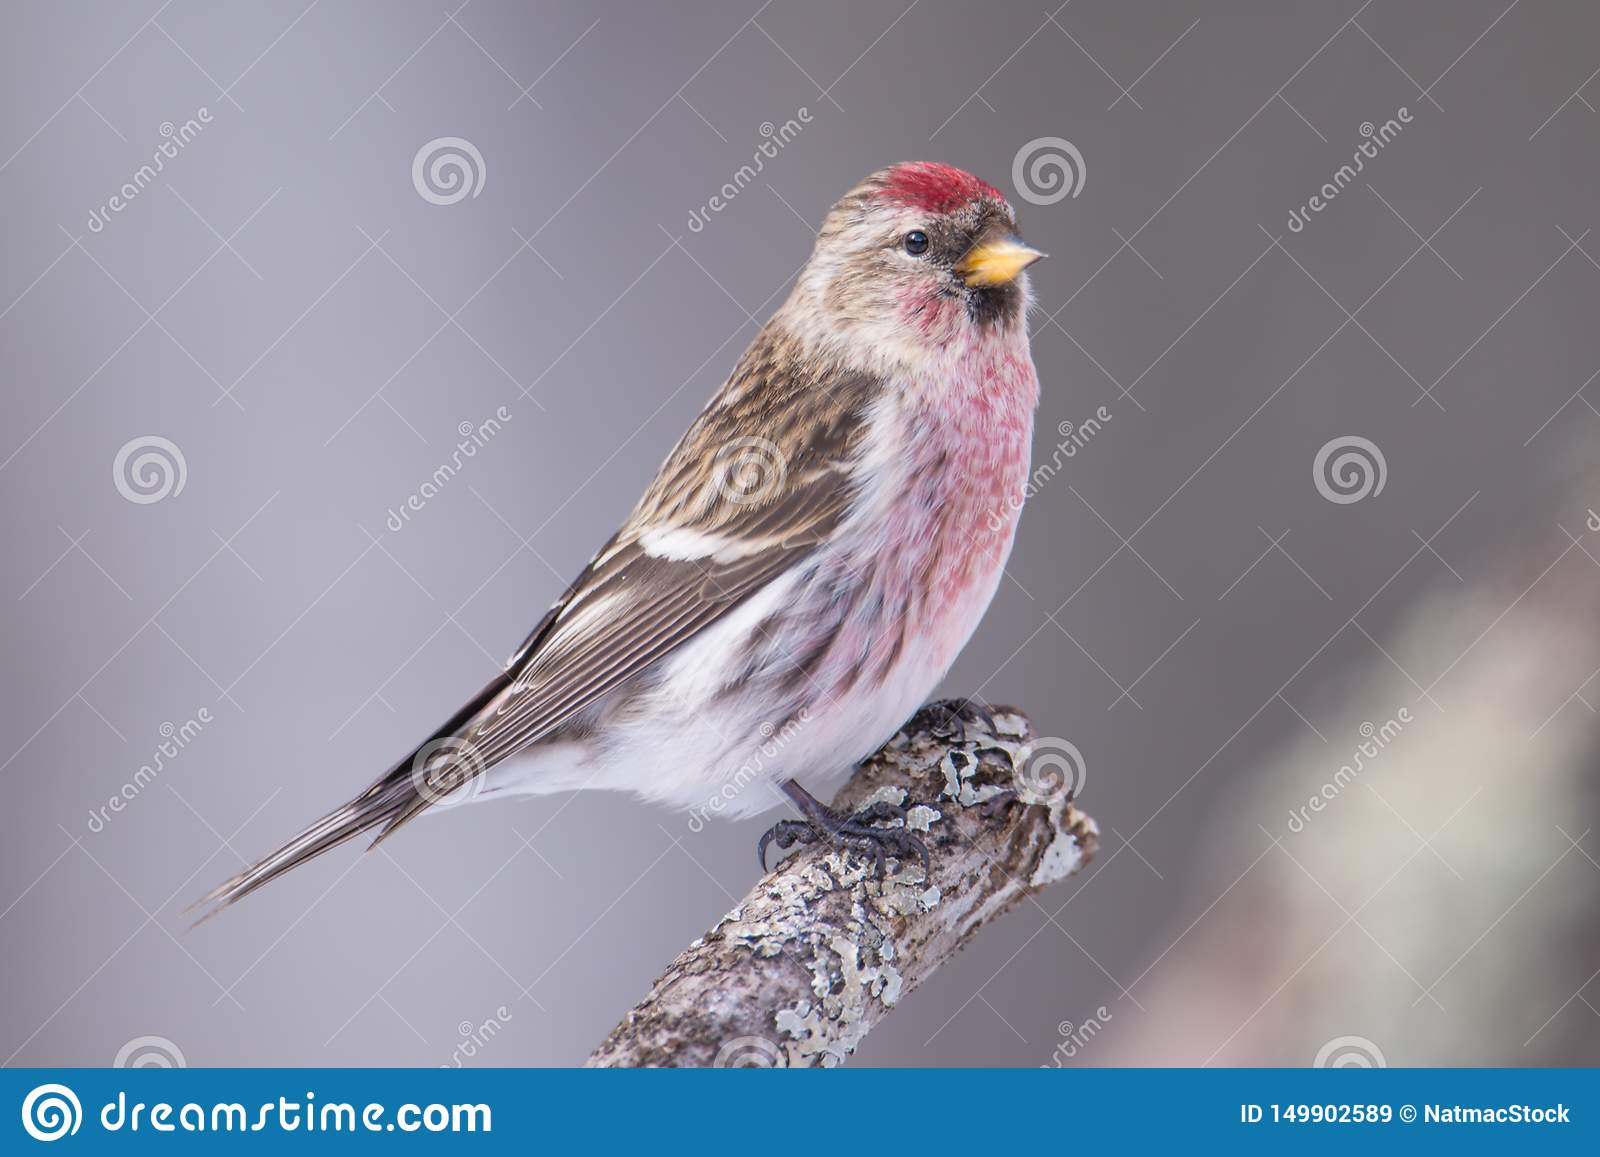 Common redpoll perched on a branch - taken in winter in the Sax-Zim Bog in Northern Minnesota